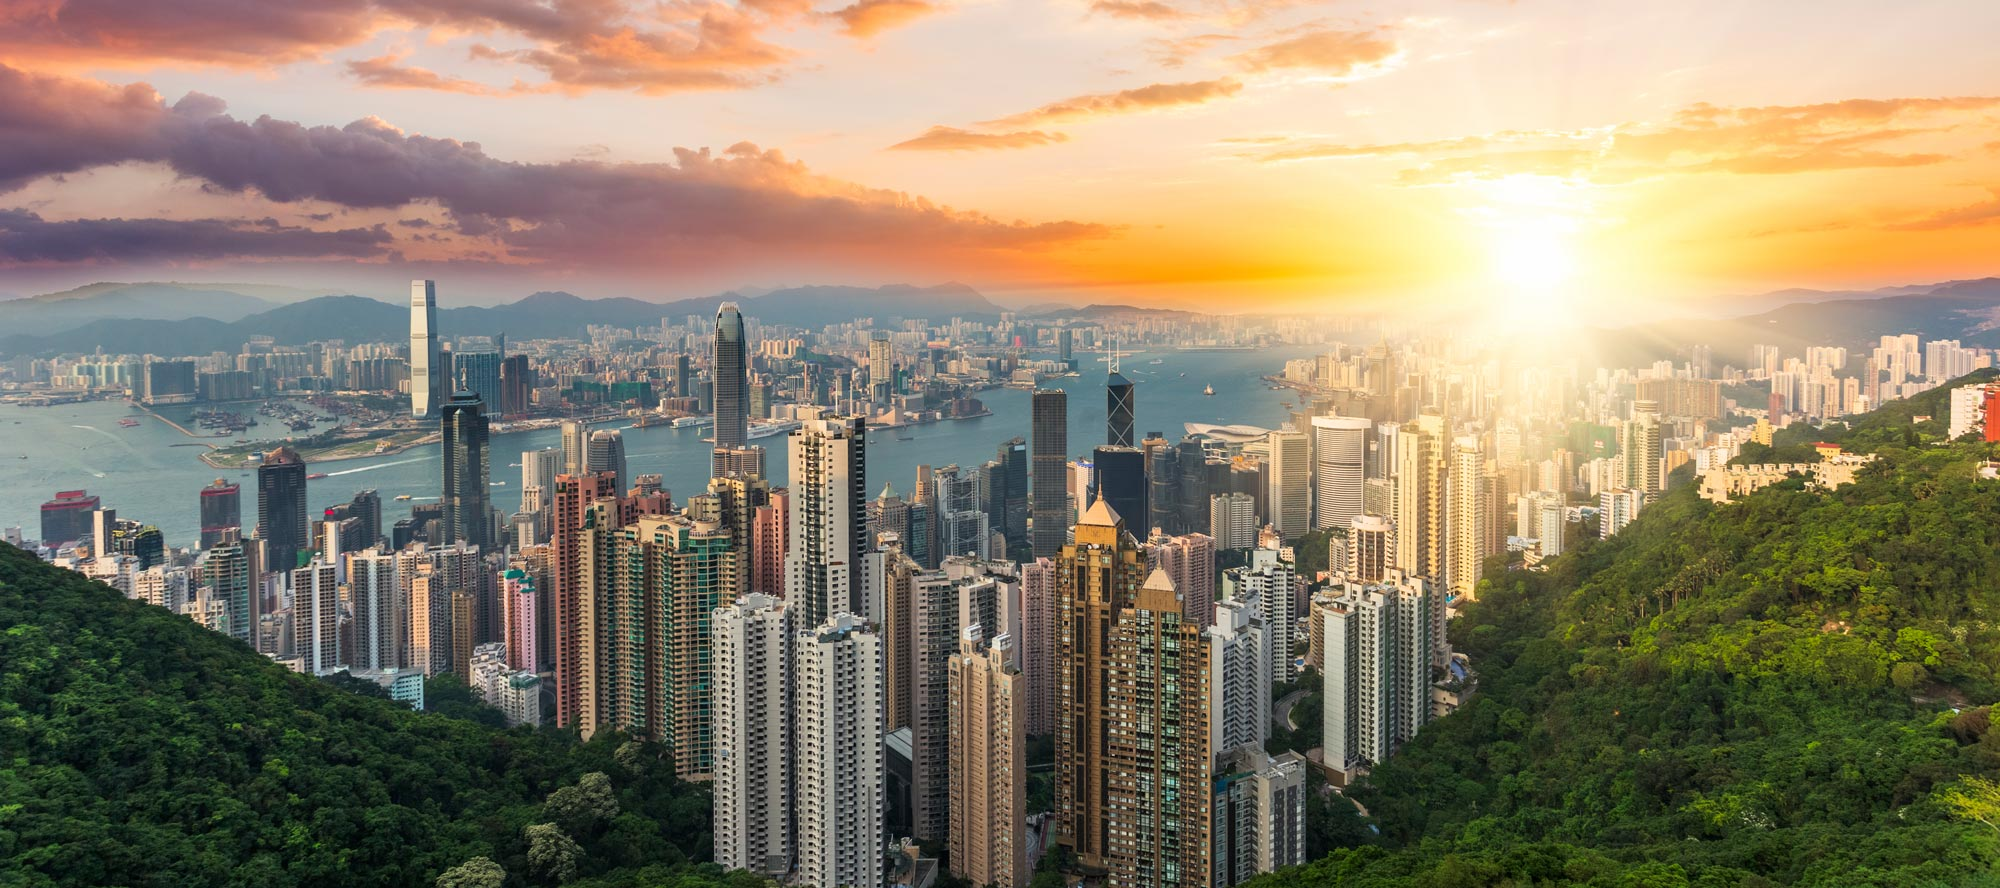 Hong-Kong-at-Sunset